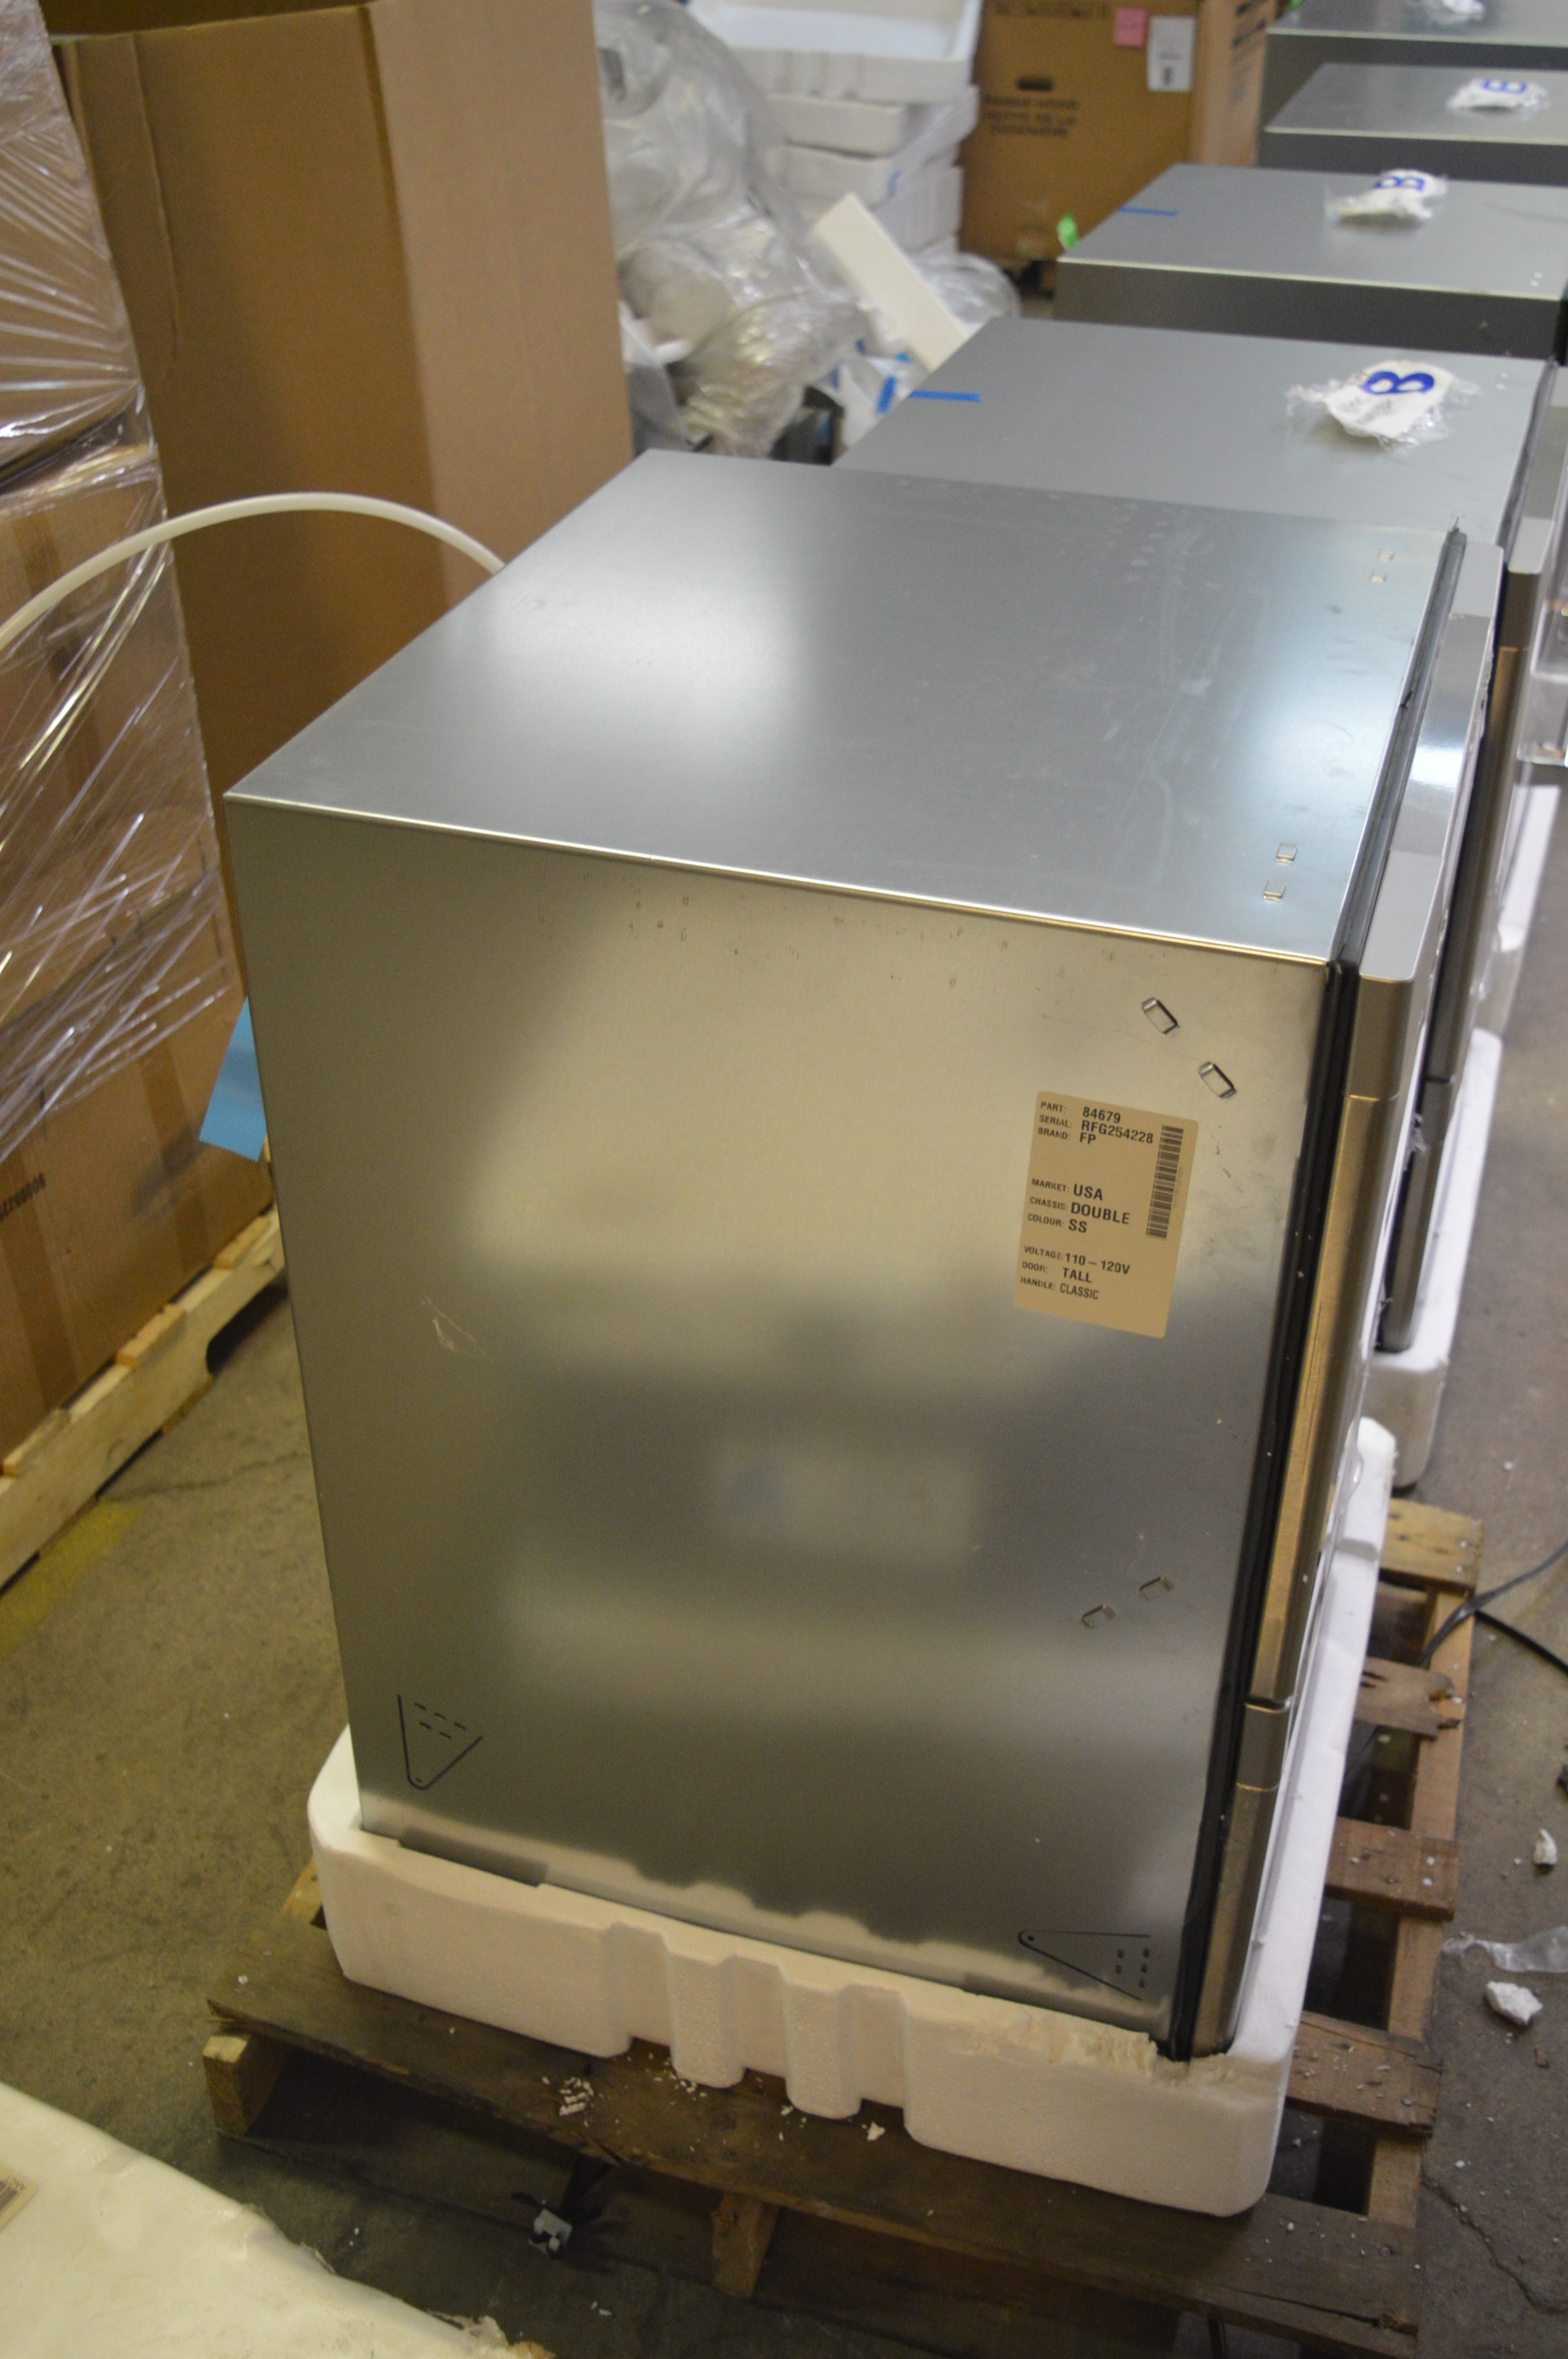 Fisher paykel dd24dctx7 24 stainless double drawer dishwasher t 2 6336 ebay - Fisher paykel dishwasher drawer reviews ...